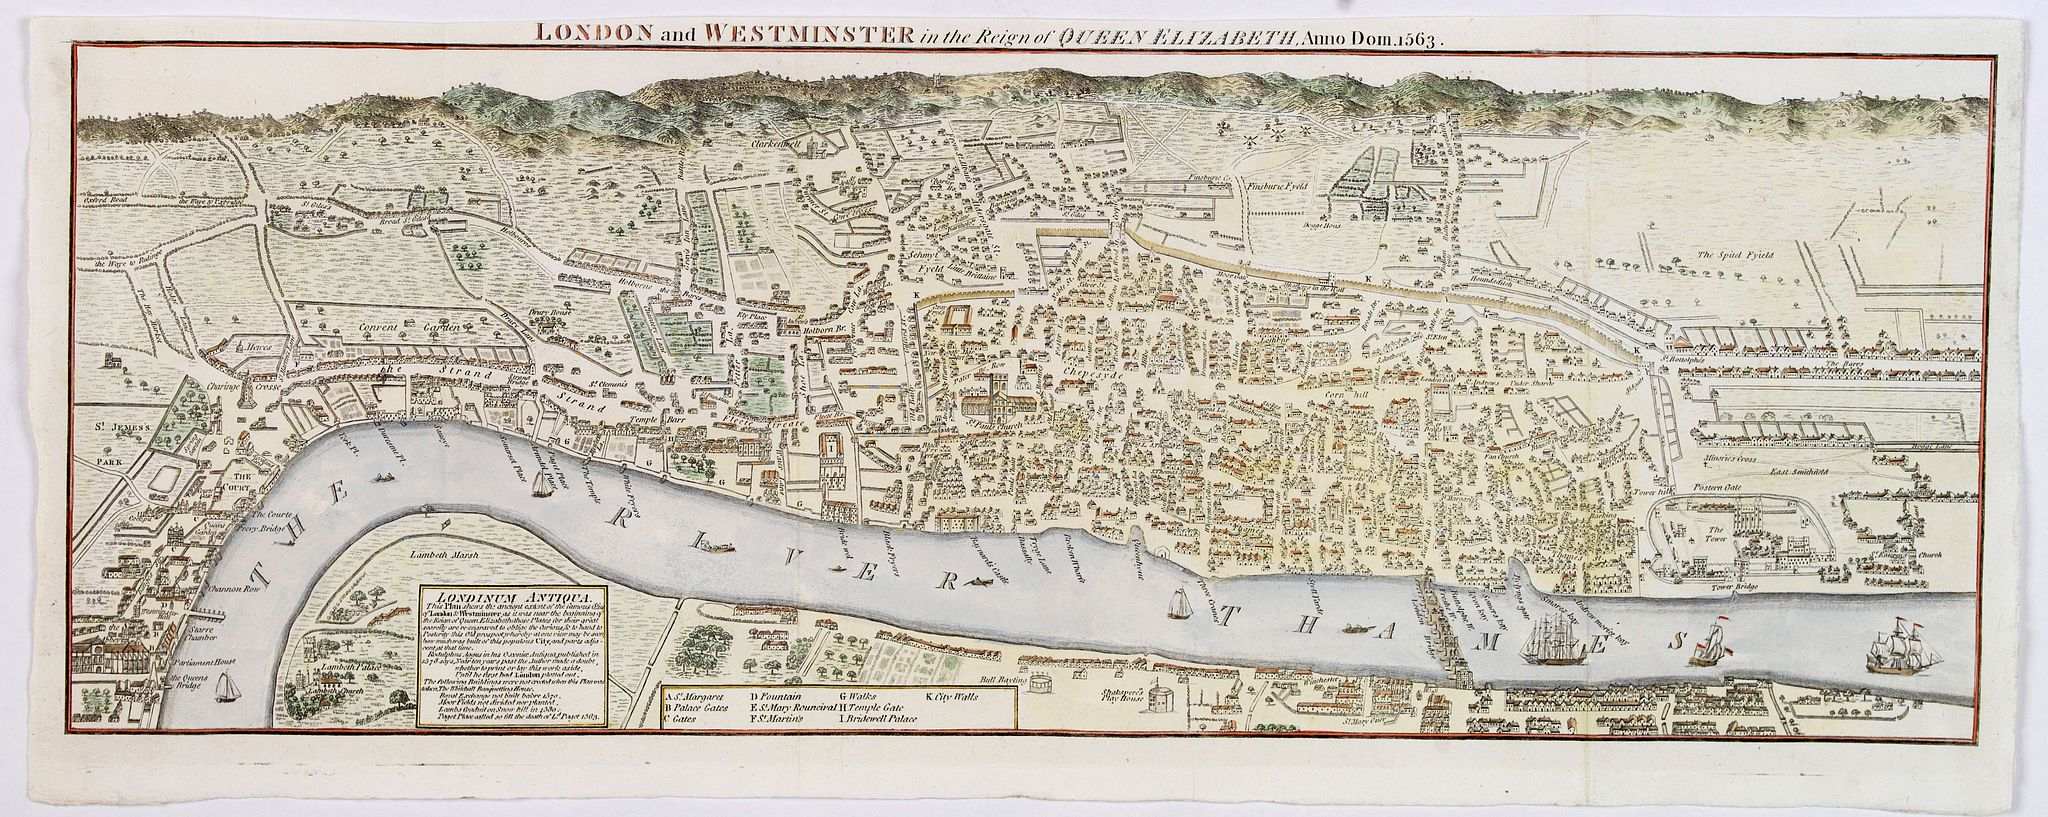 [PANORAMA]., London and Westminster in the Reign of Queen Elizabeth. Anno Dom. 1563,, antique map, old maps